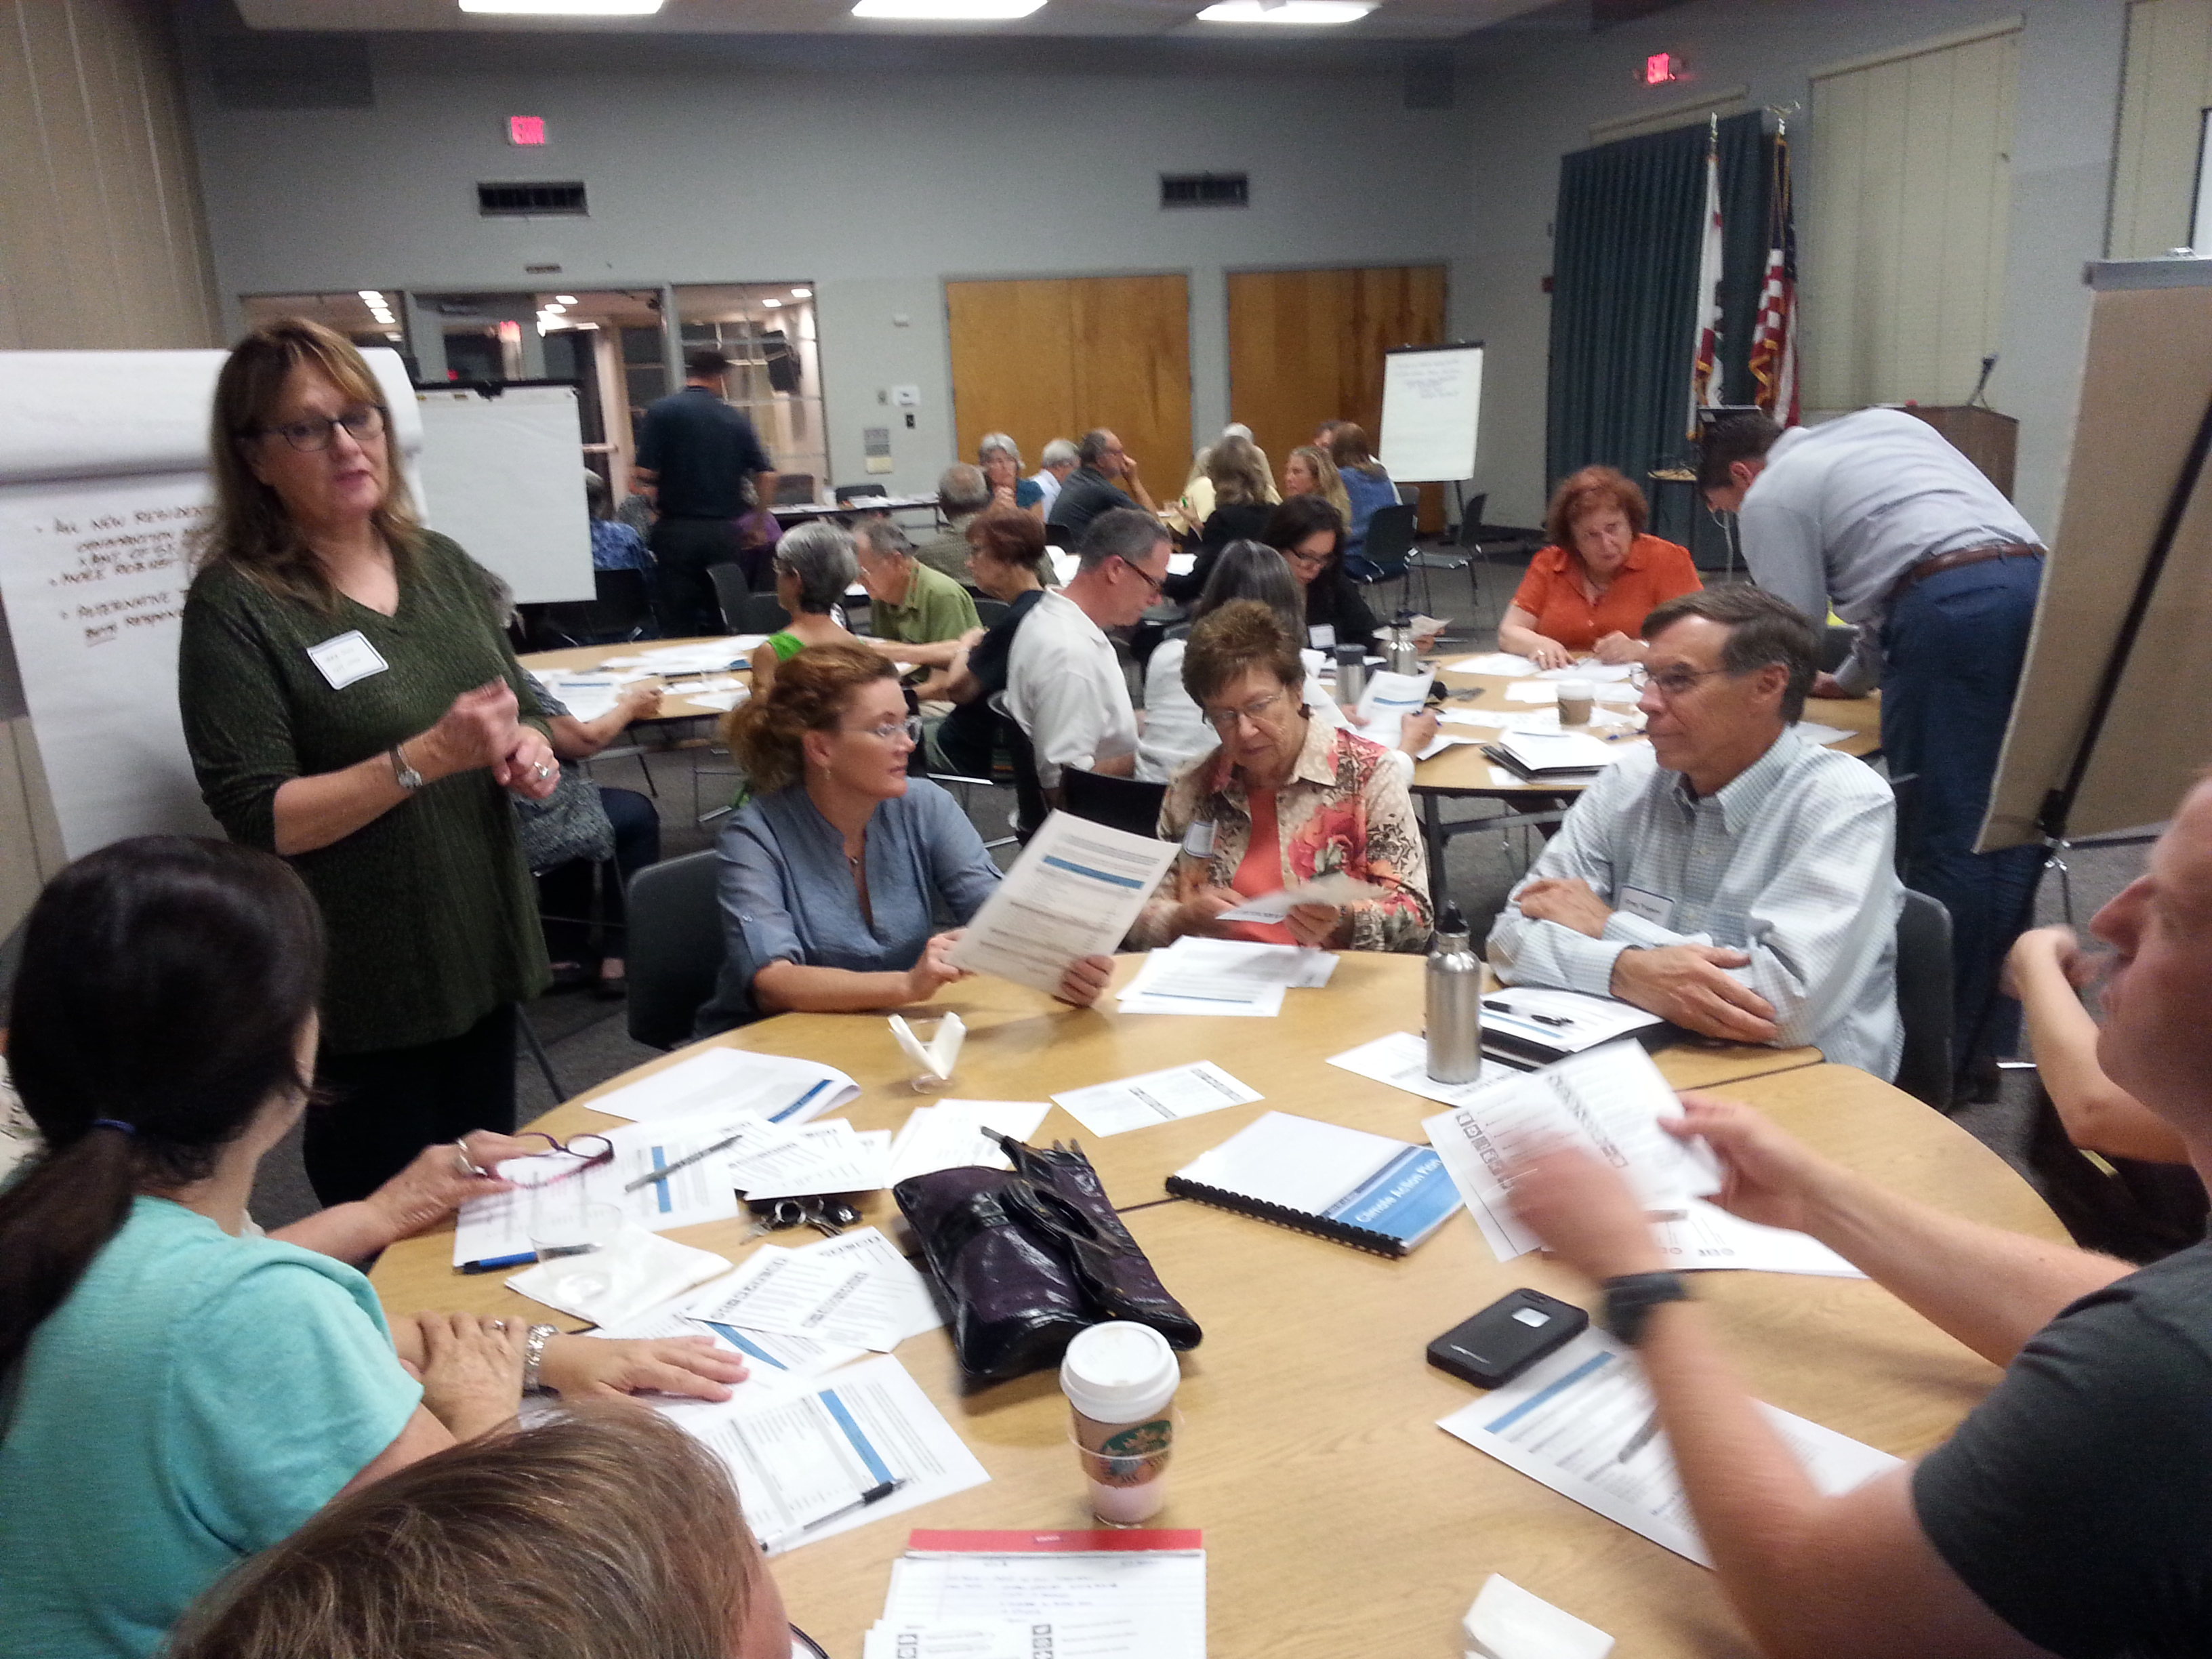 Escondido Climate Action Plan Workshop @ Escondido City Hall, Mitchell Room